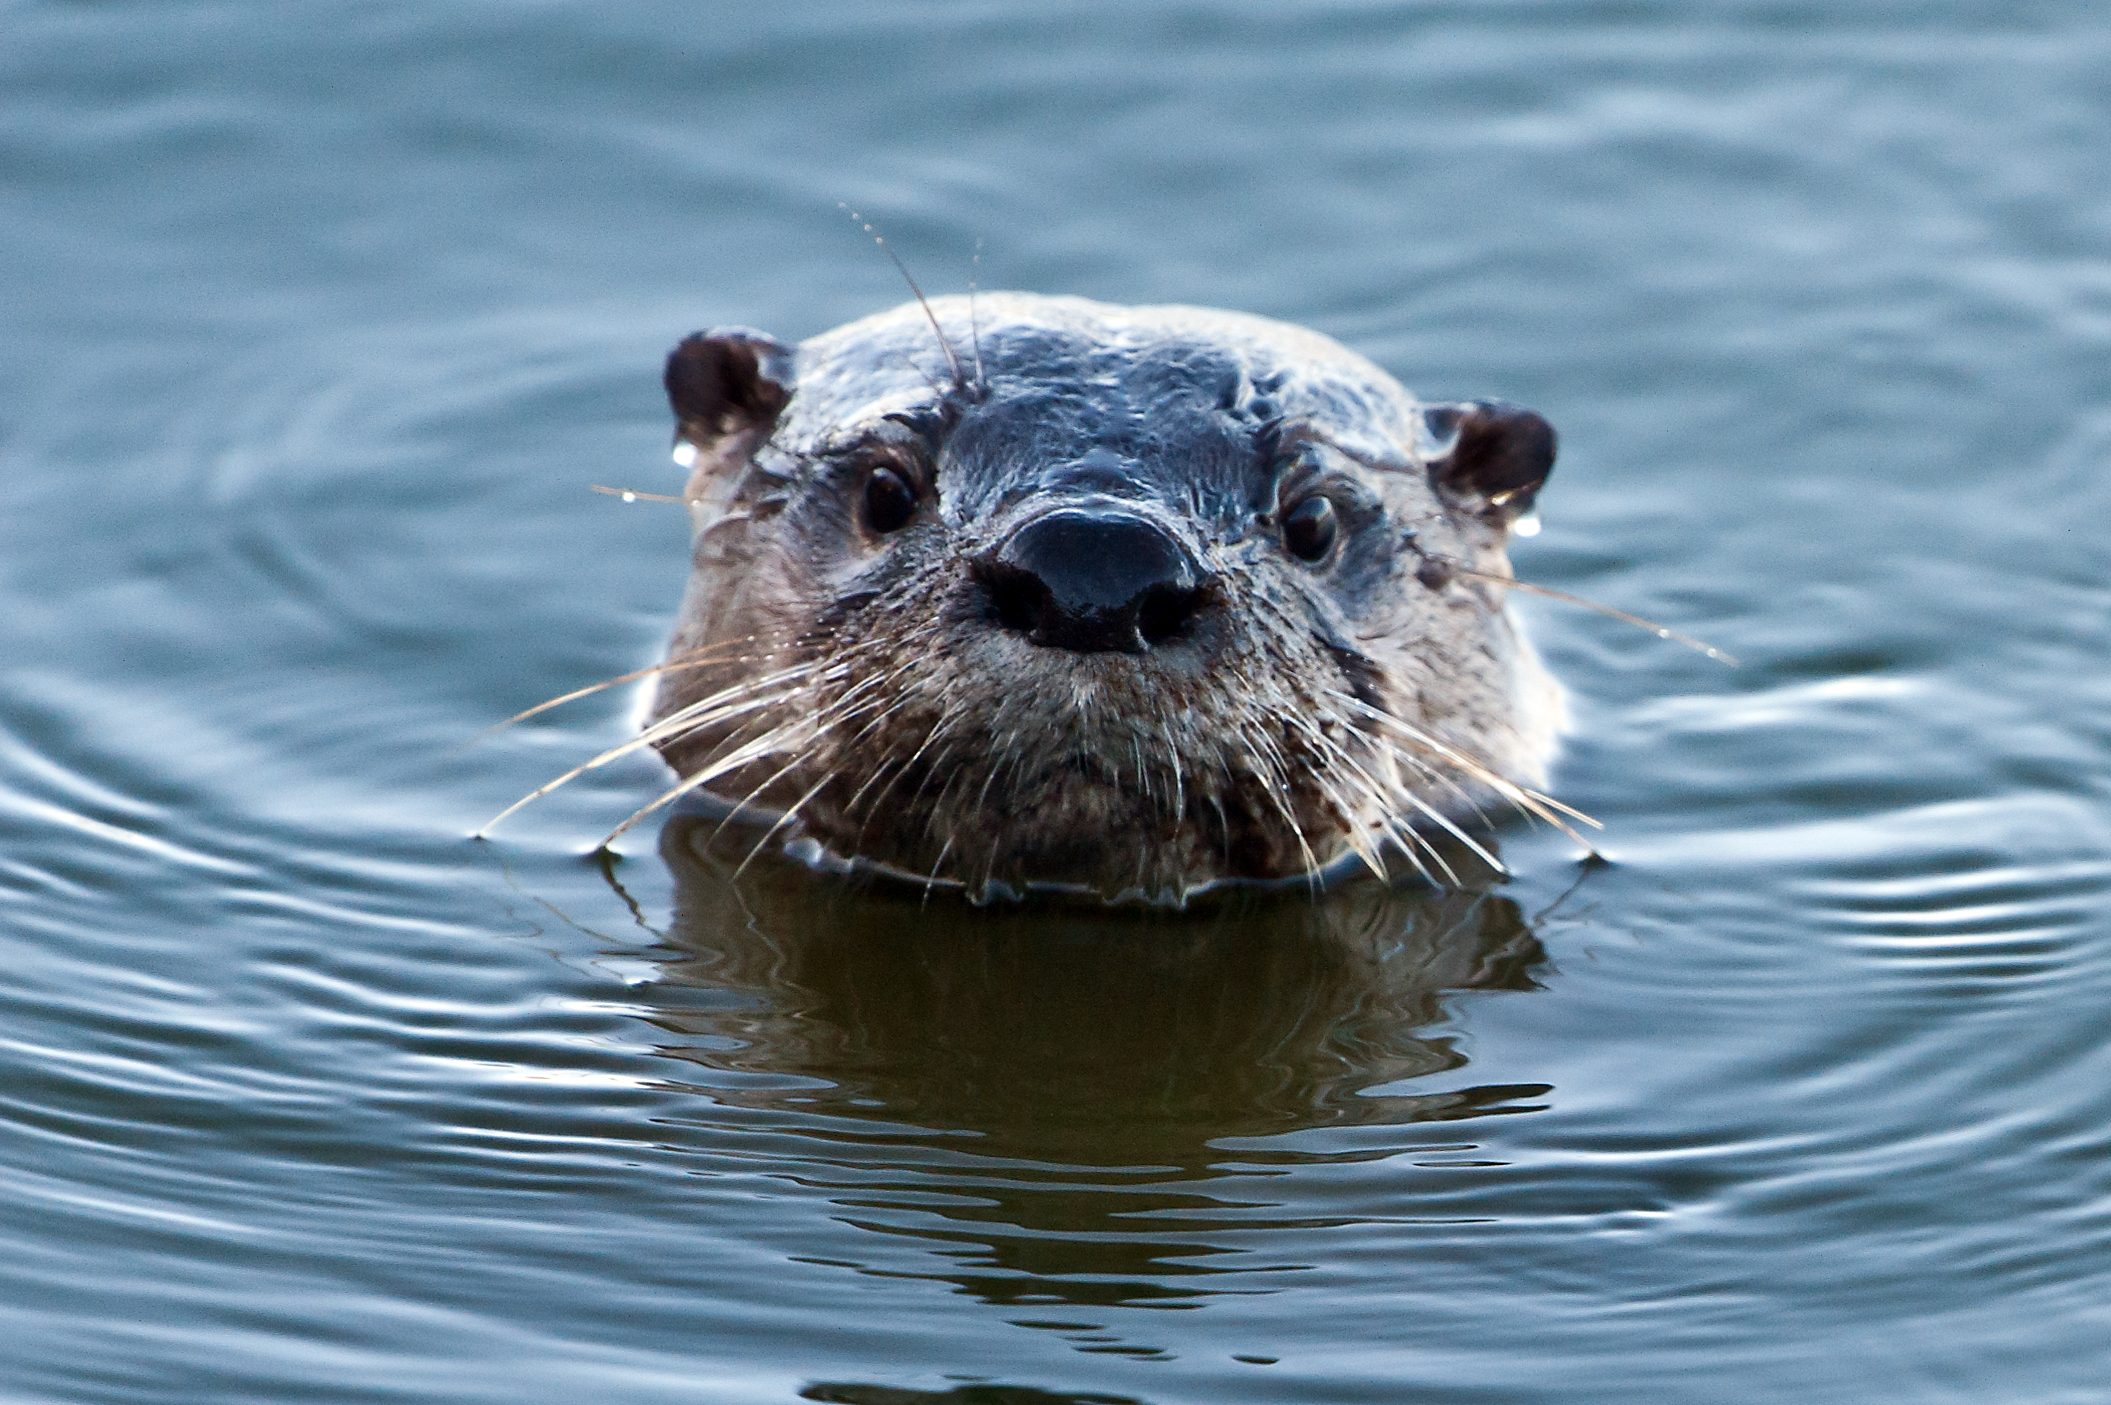 North American River Otter Stephen L Tabone Nature Photography 2111x1405